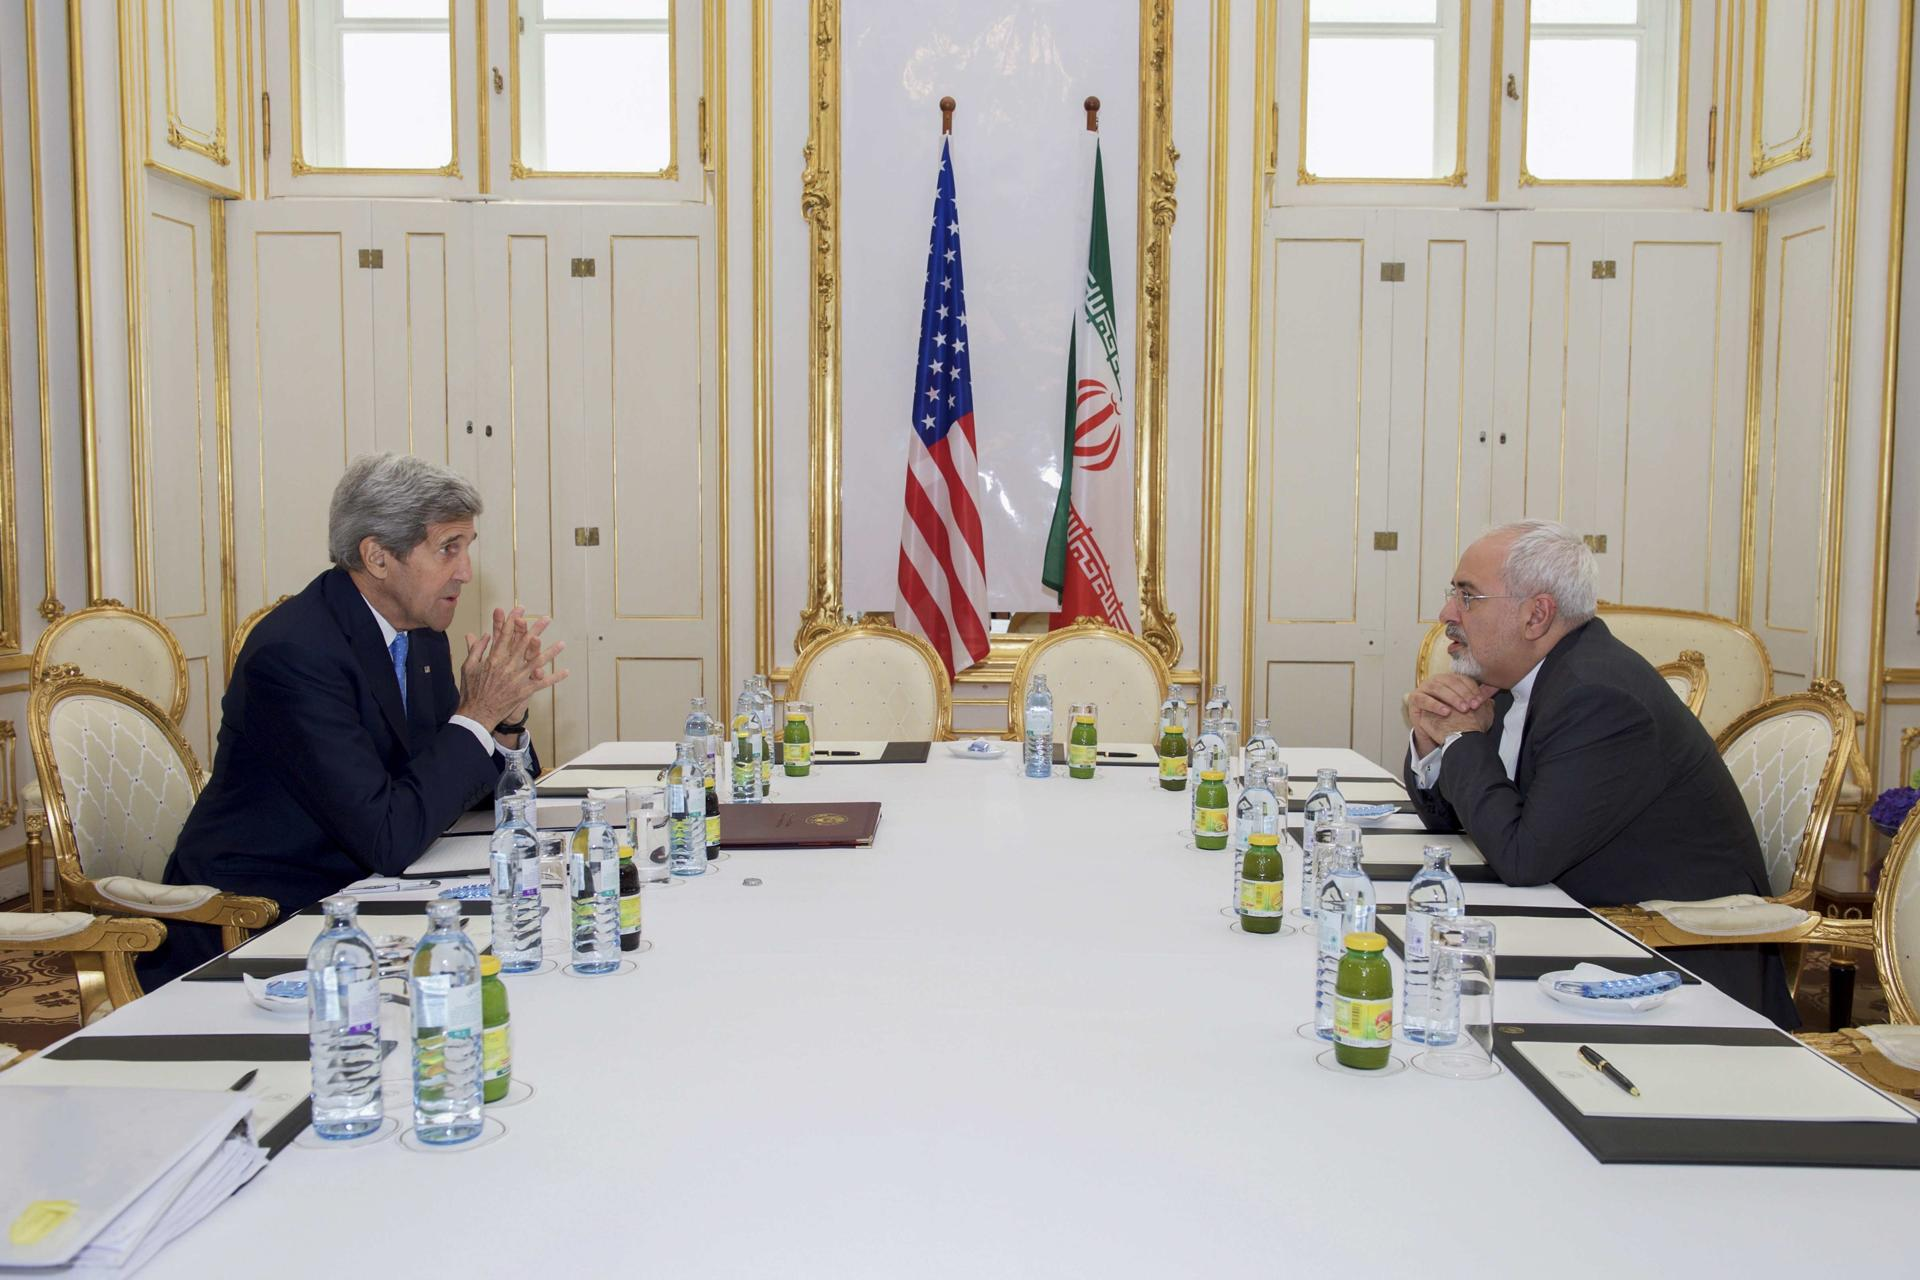 Then US Secretary of State John Kerry (left) met with Iranian Foreign Minister Javad Zarif at a hotel in Vienna, Austria June 30, 2015.